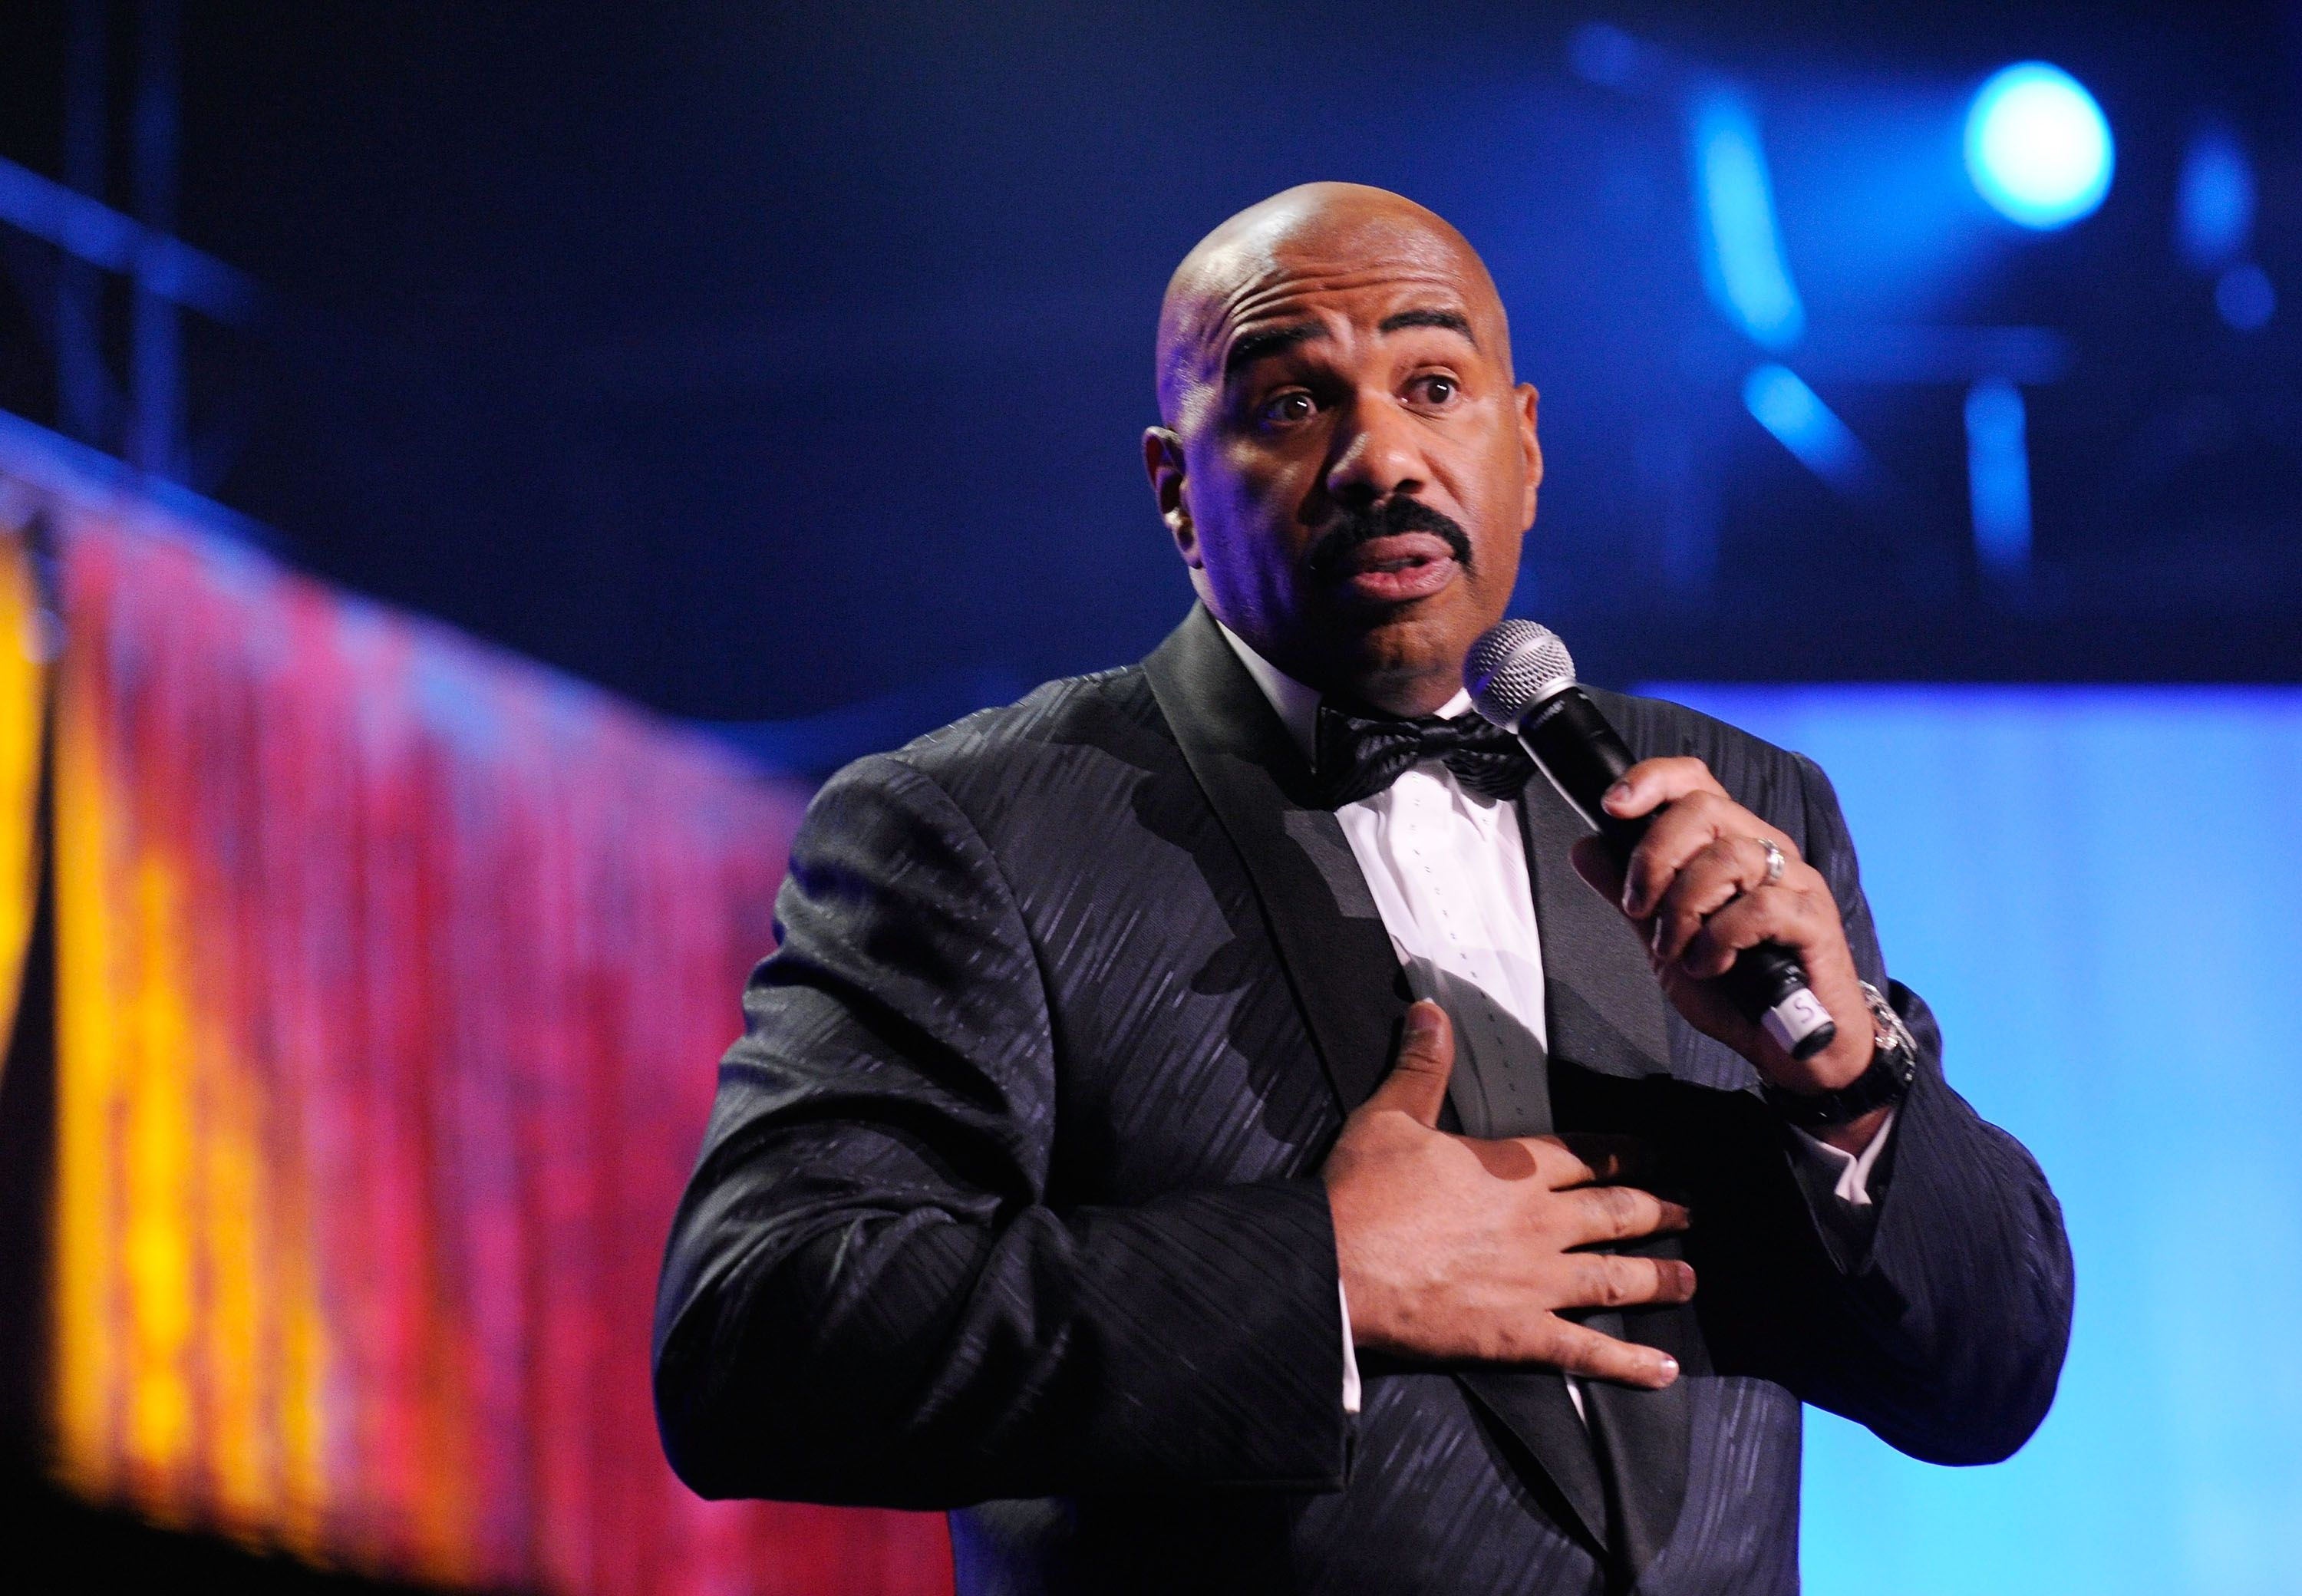 Steve Harvey From 'Family Feud' Just Got Real With an Audience